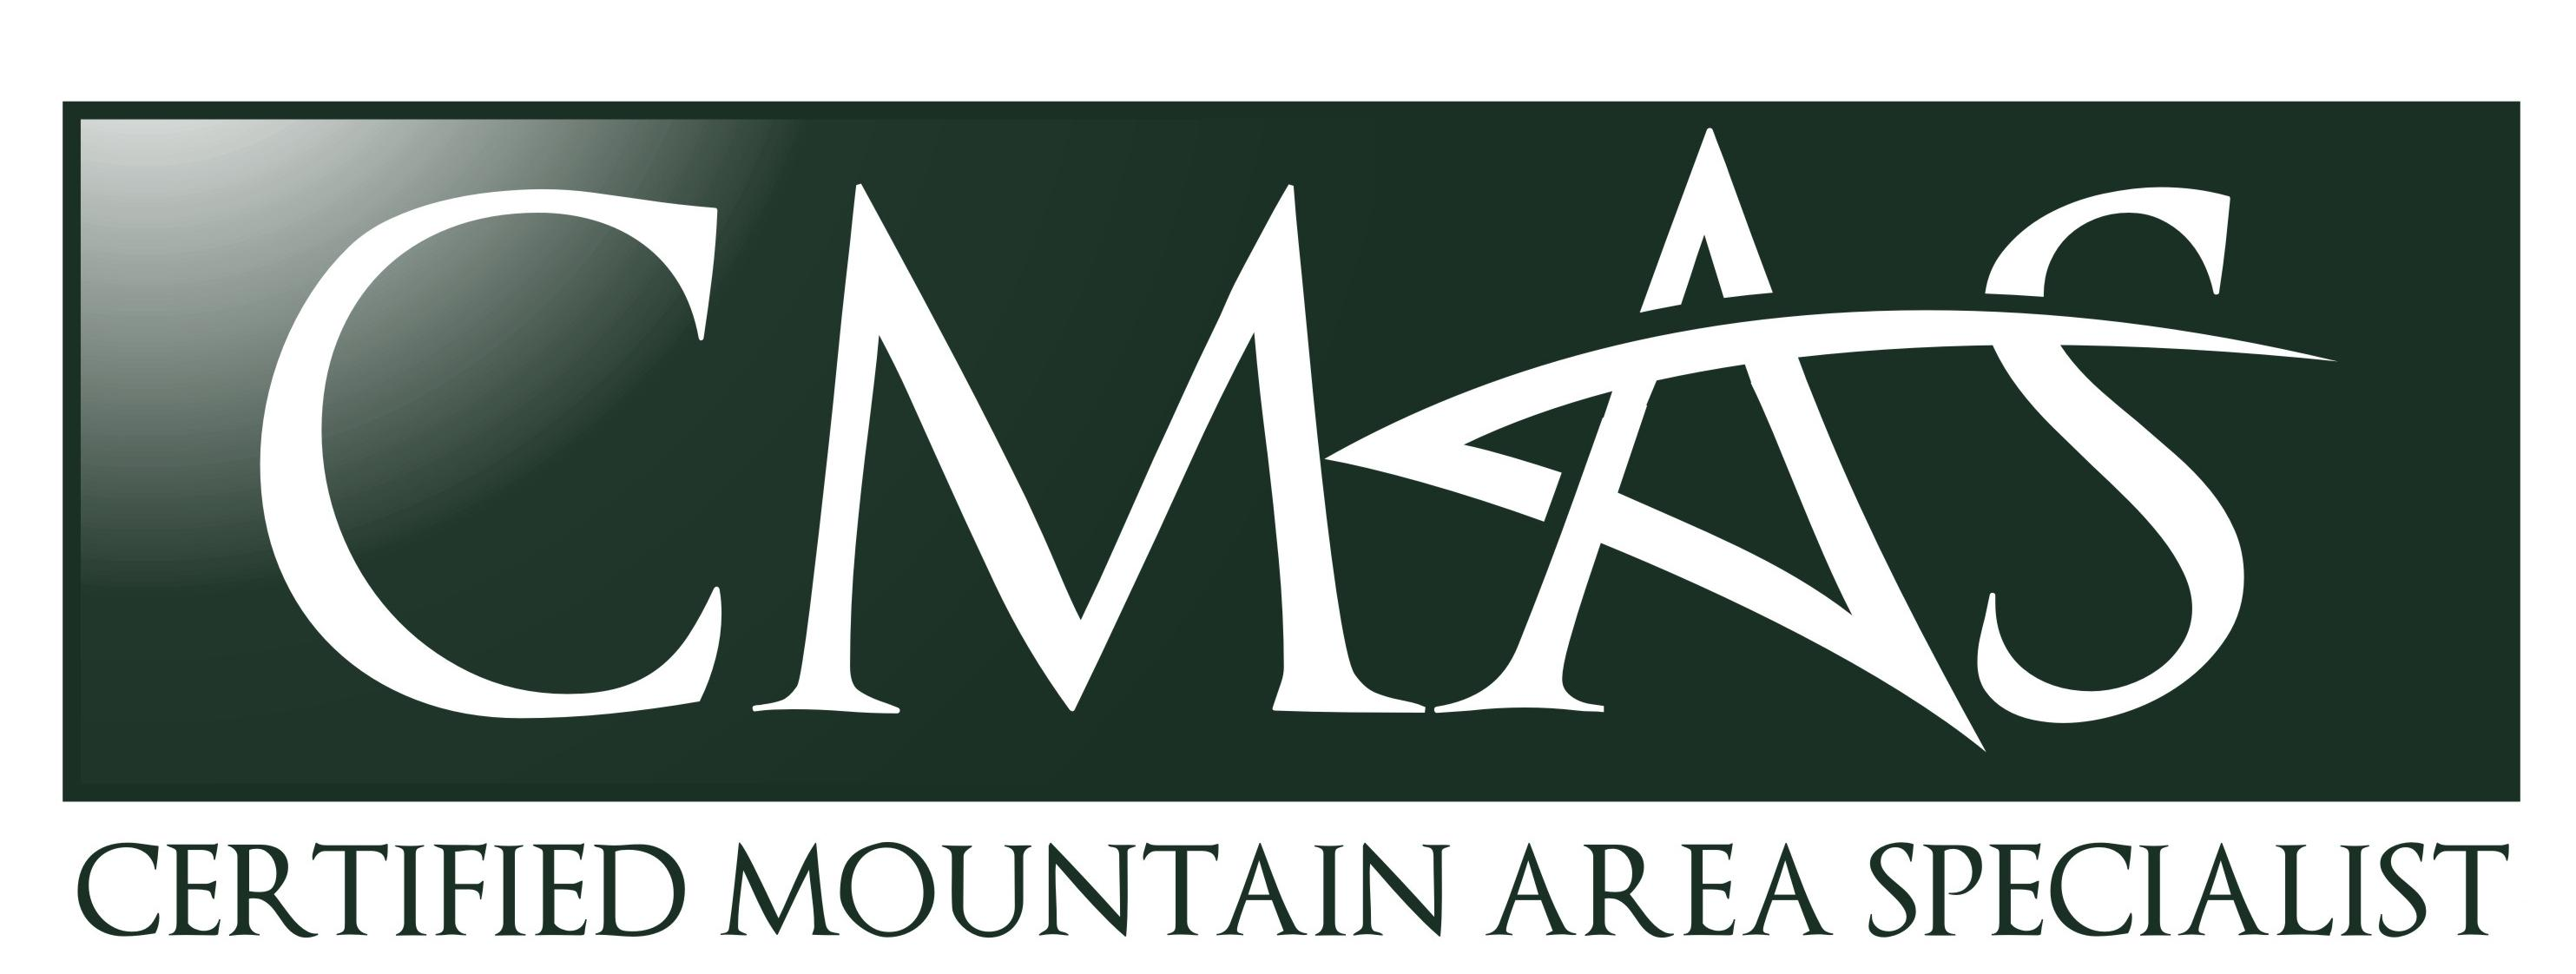 Lori Smith Certified Mountain Area Specialist